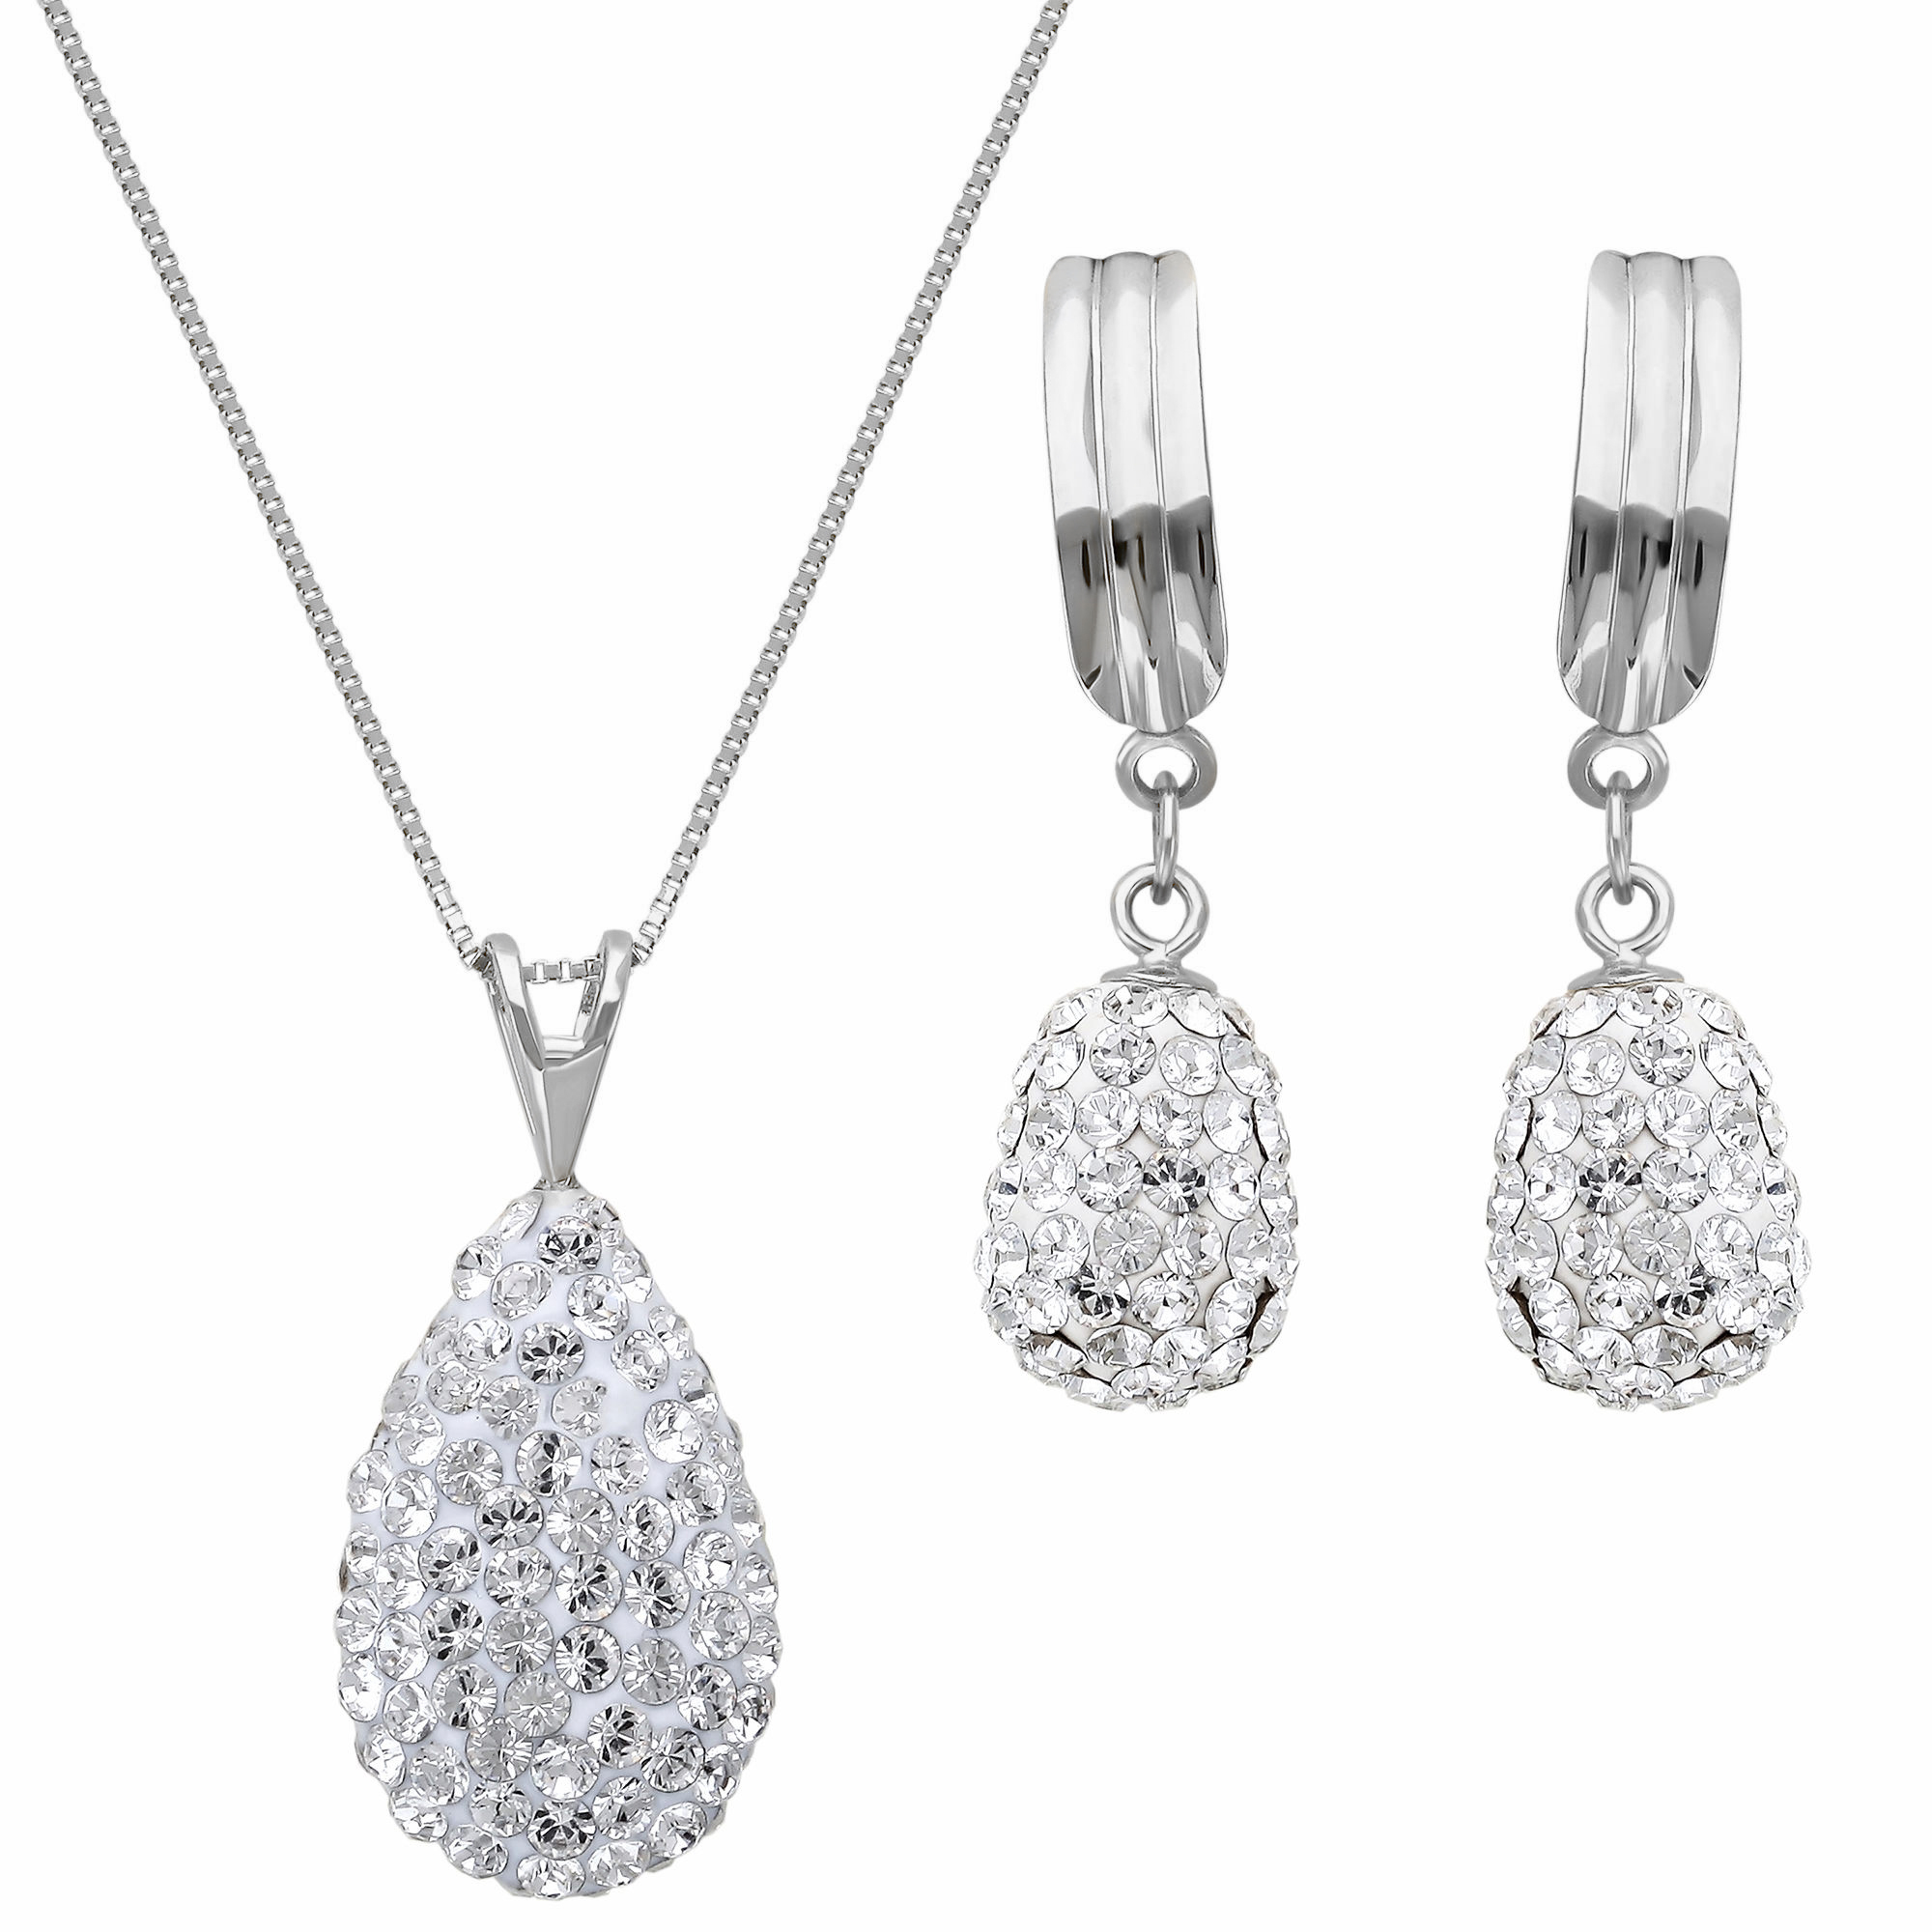 Rhodium_Plated_Puffed_Teardrop_Crystal_Necklace_and_Earrings_Set